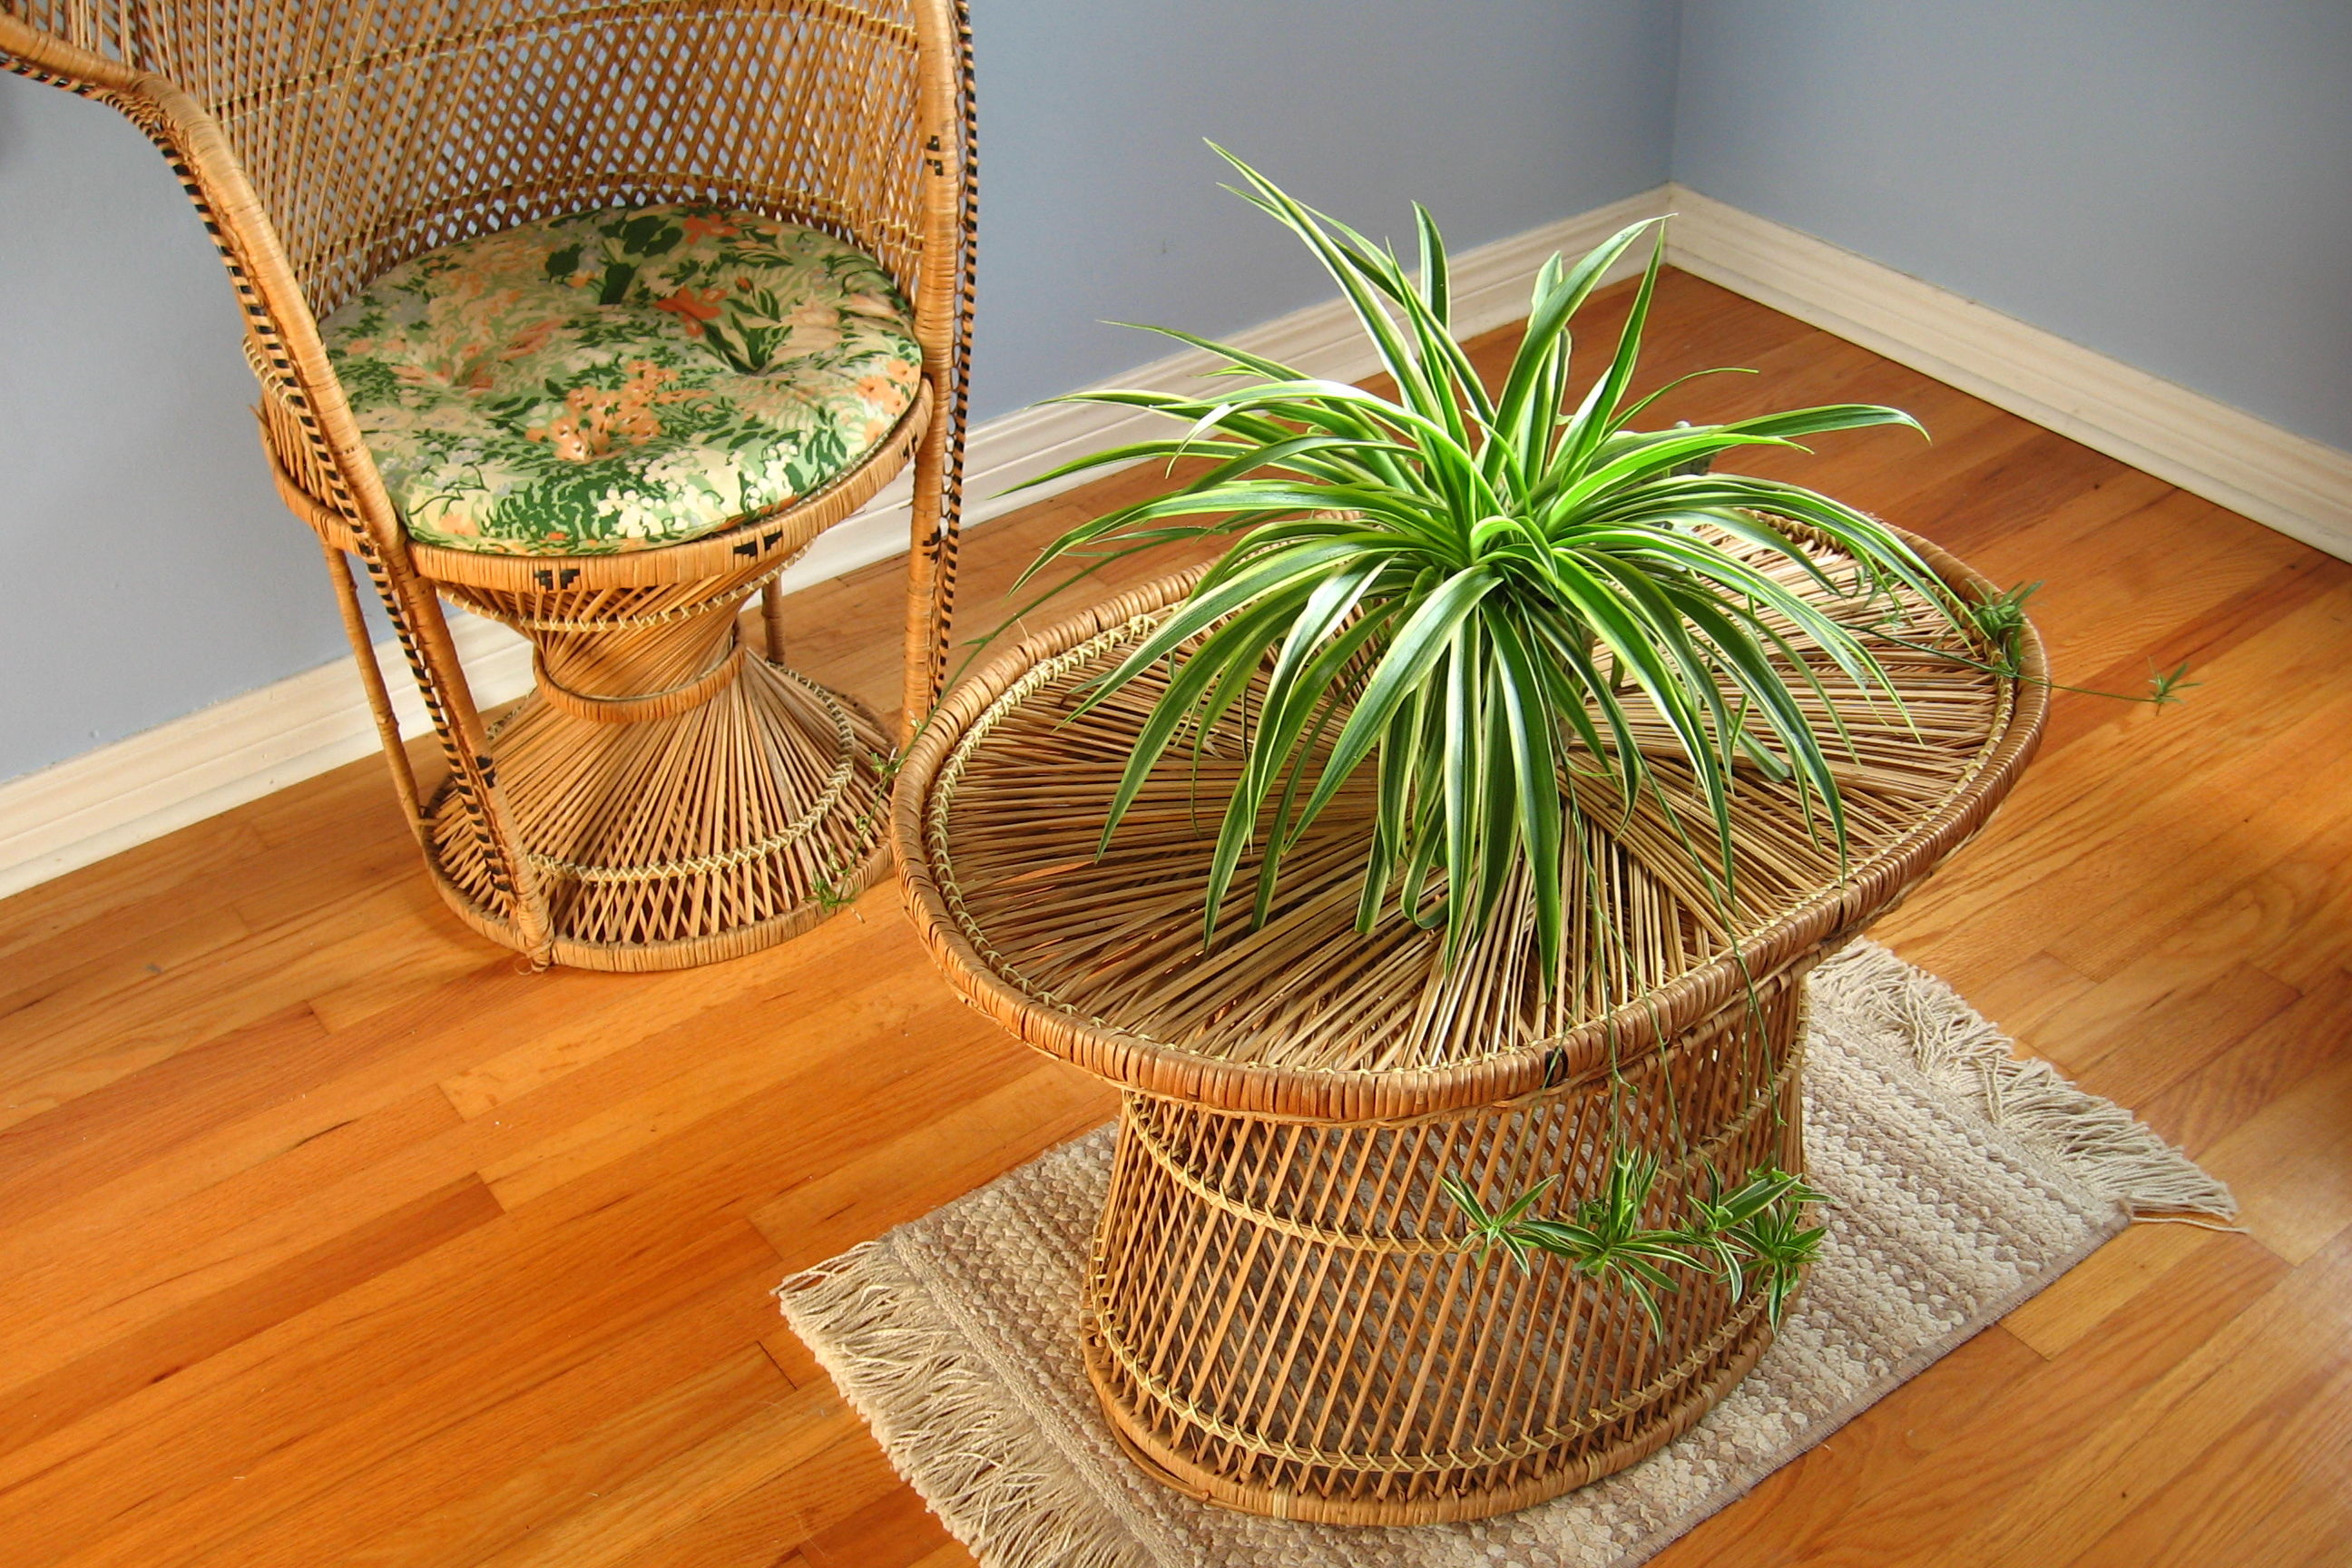 How to Grow a Spider Plant